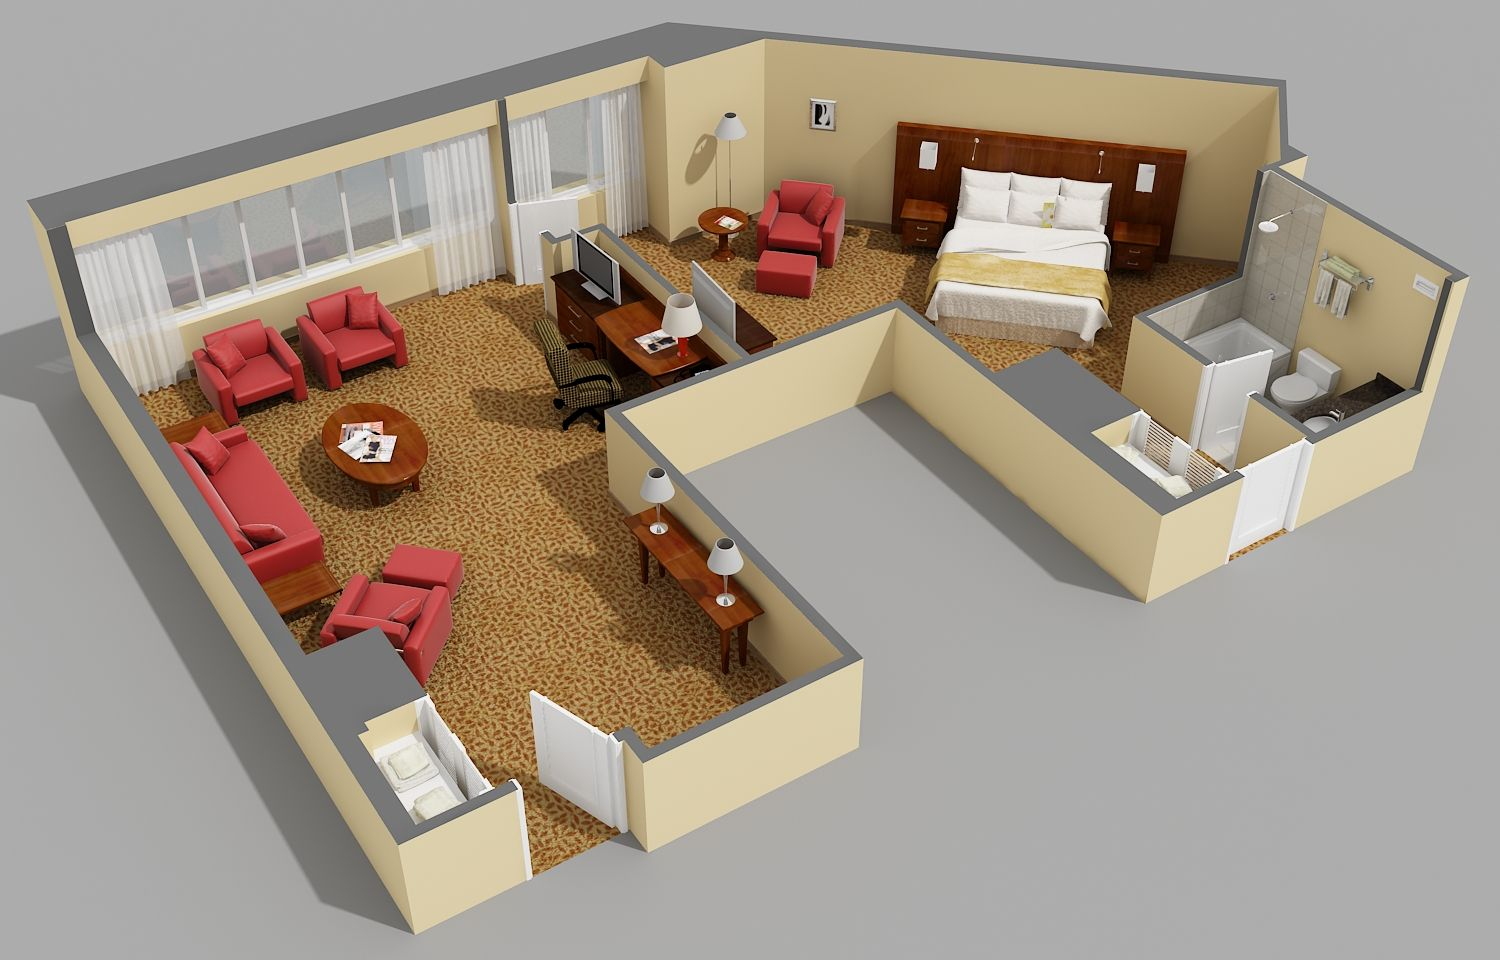 3d floor plans used for hotel marketing room hotel for Studio apartment design 3d